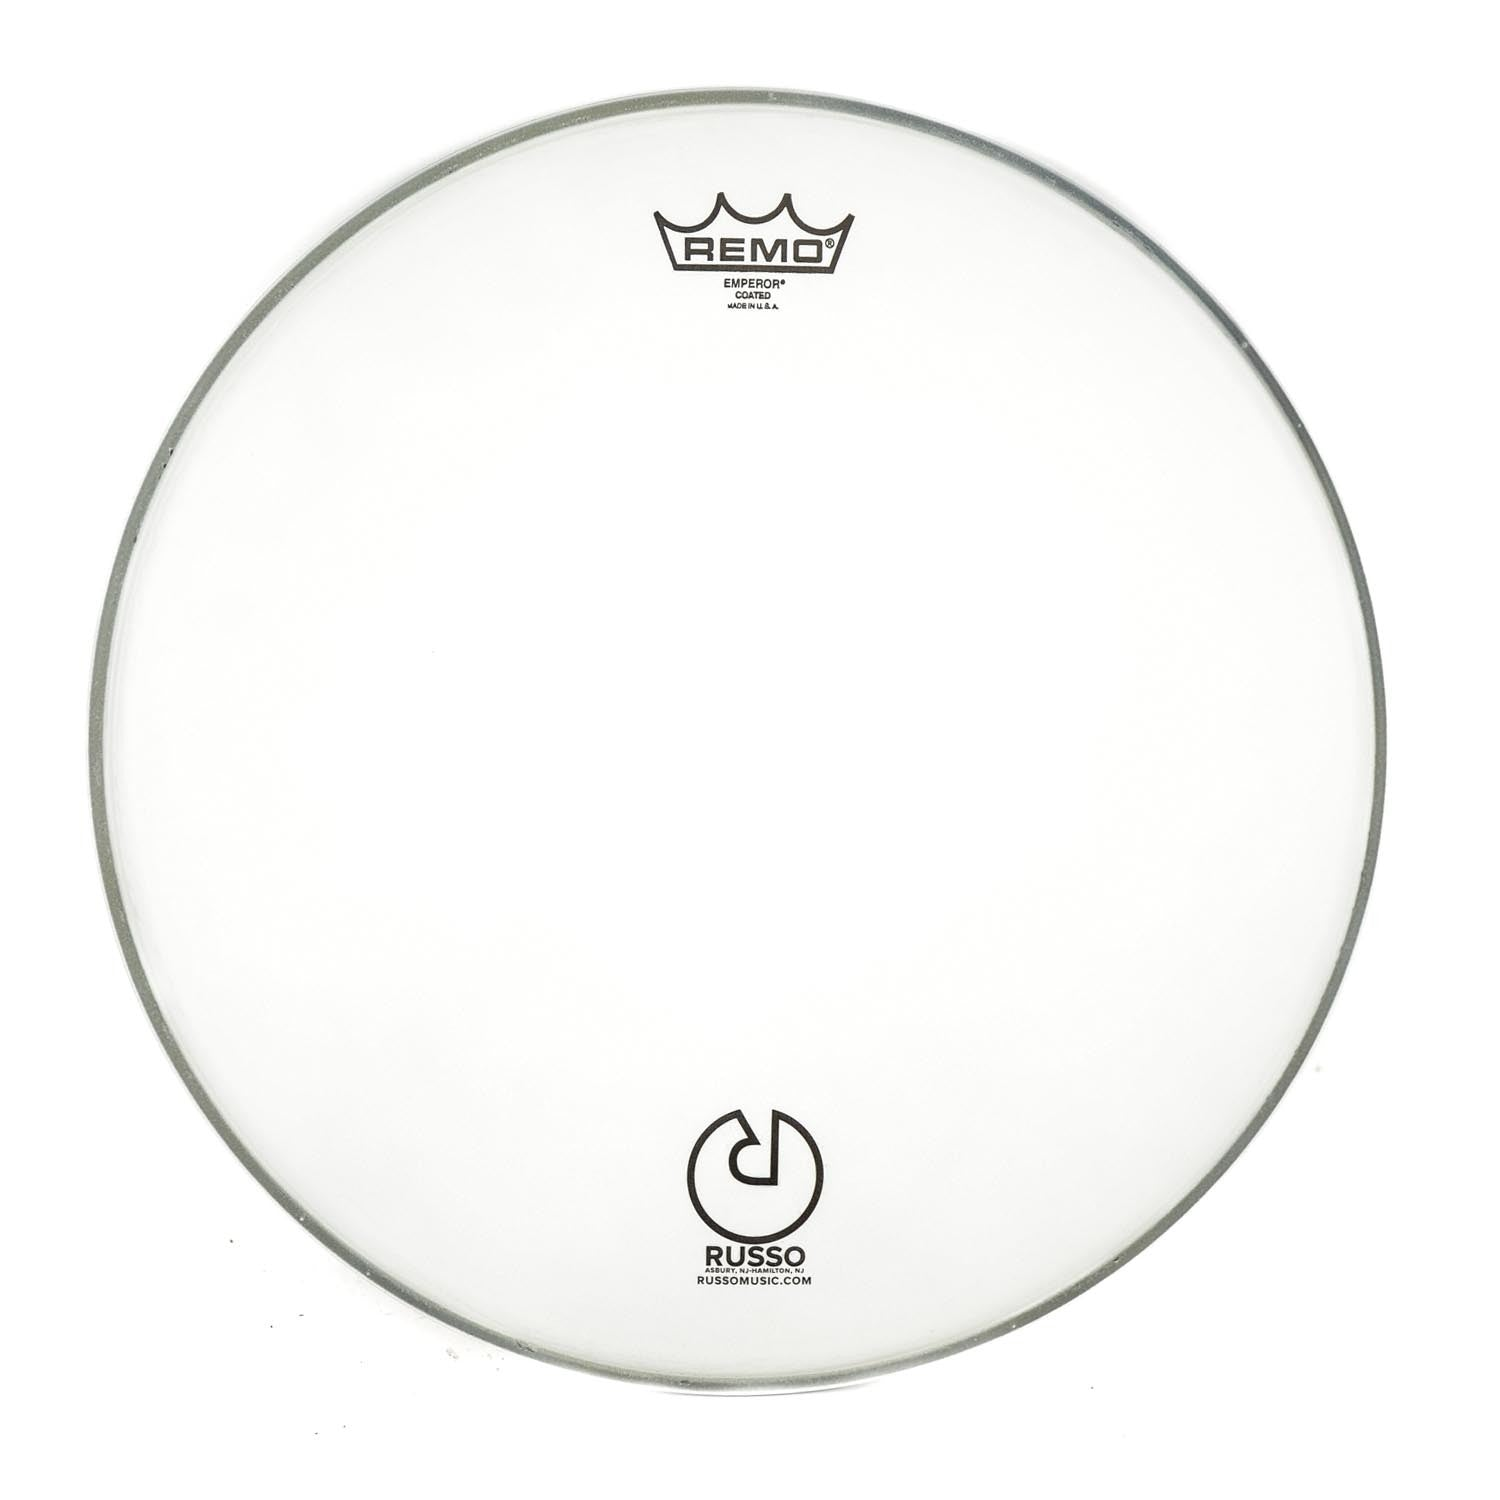 "Remo 13"" Coated Emperor With Russo Logo"